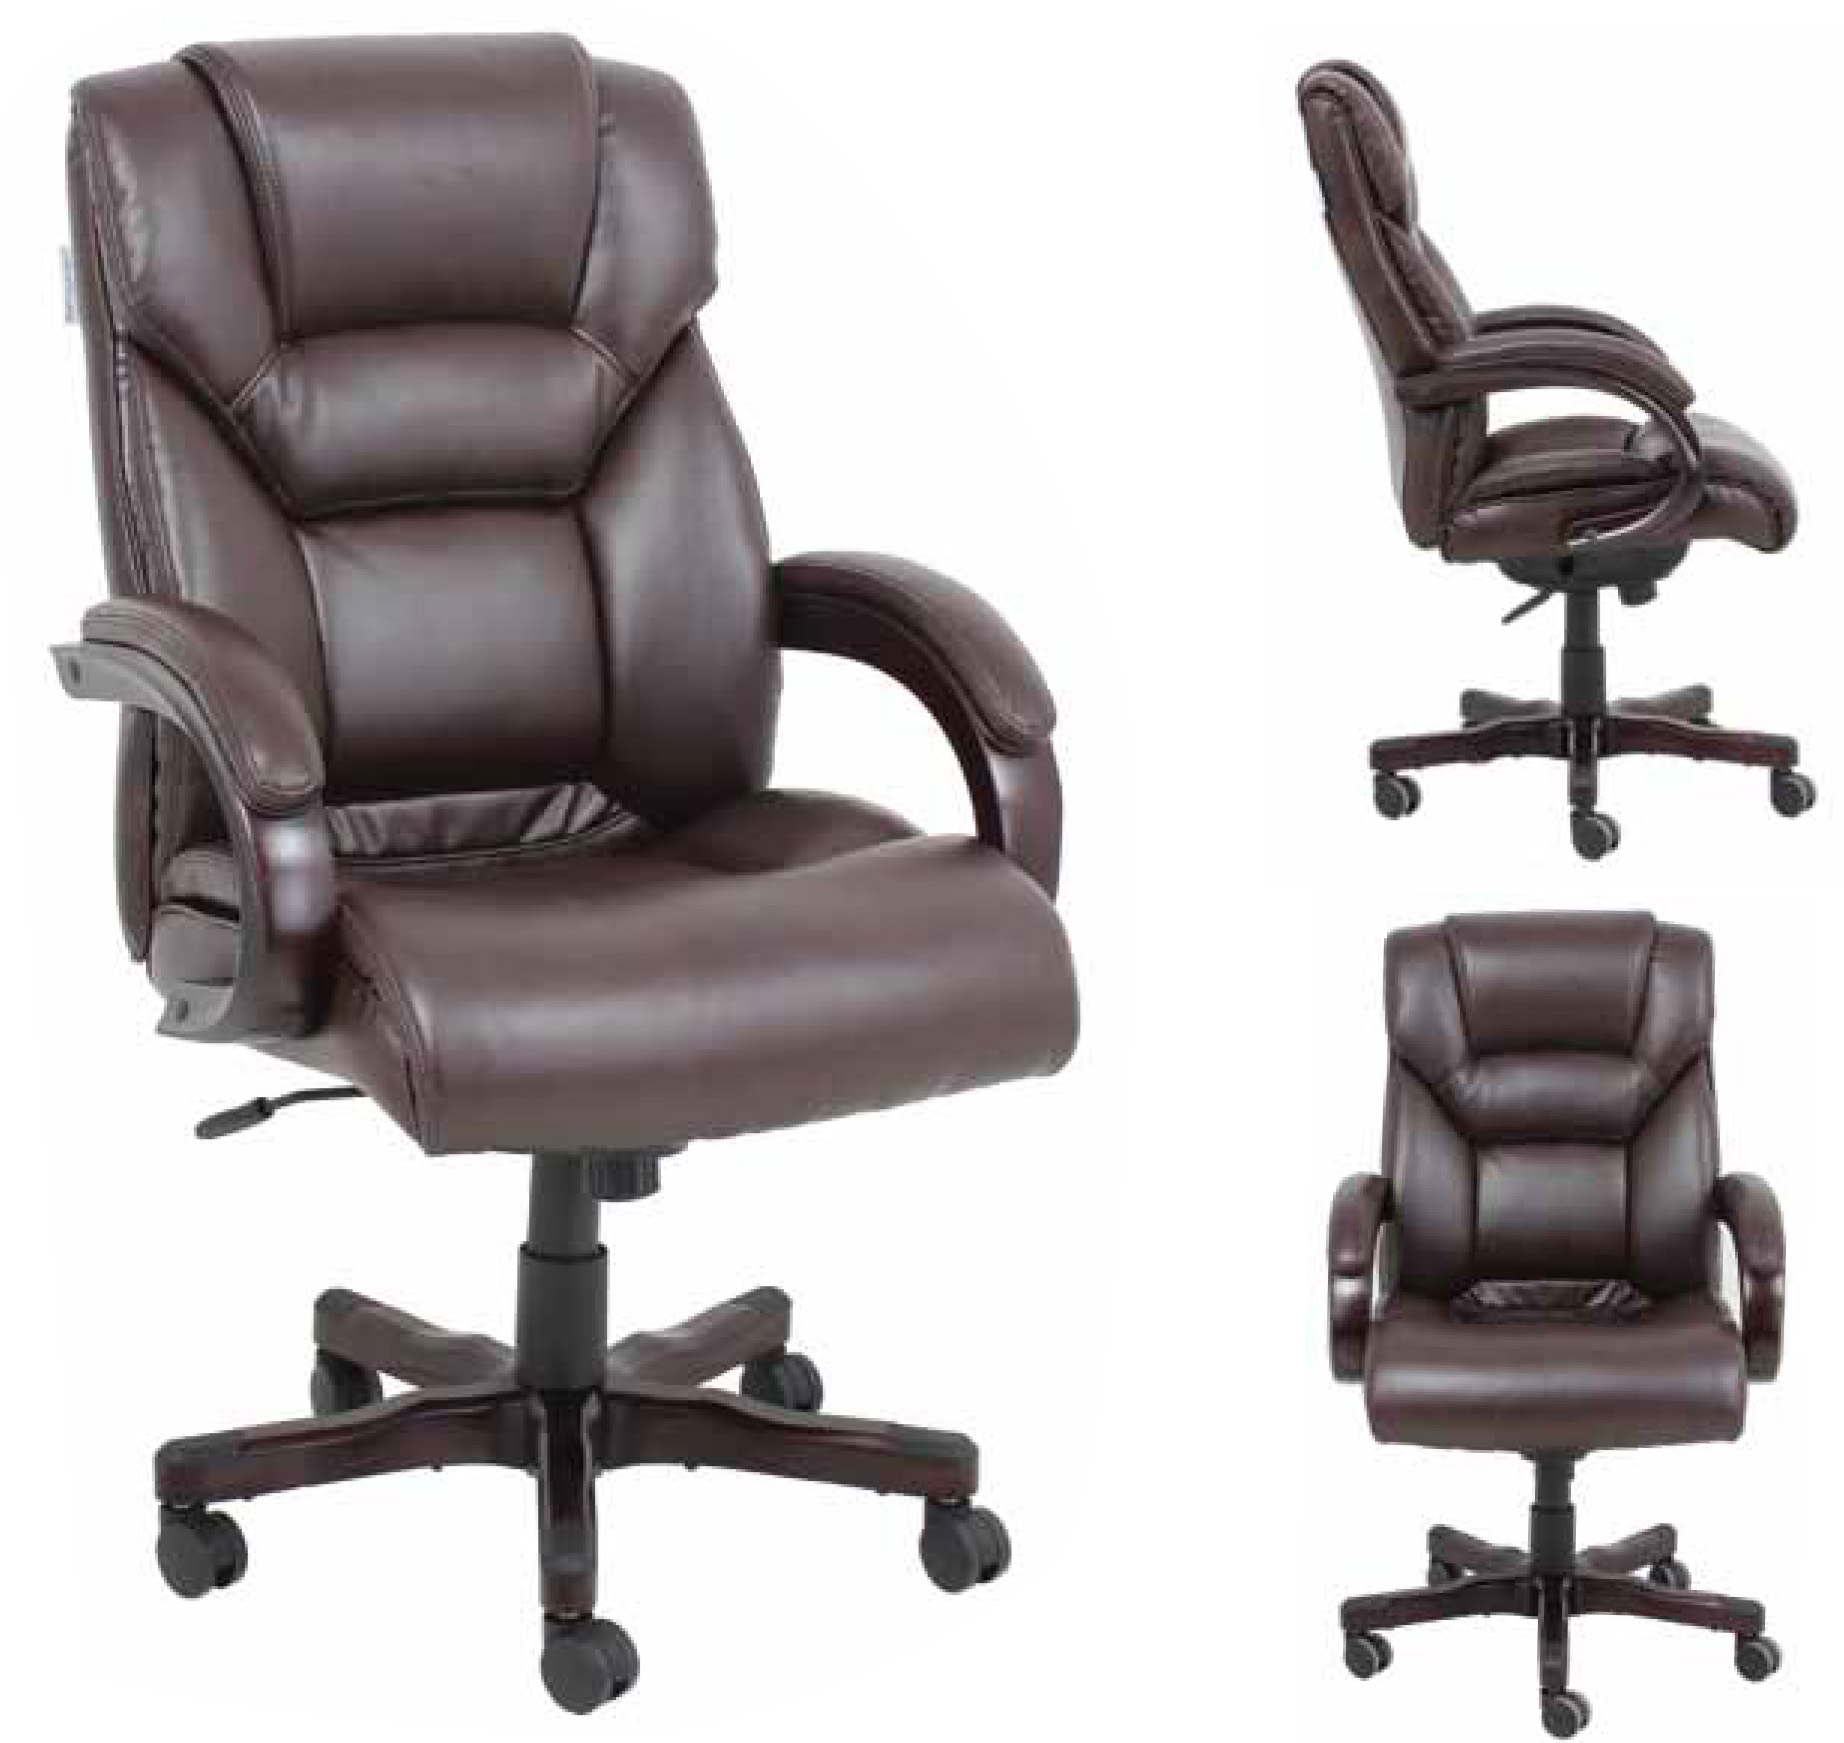 Barcalounger Neptune Ii Home Office Desk Chair Recliner Leather